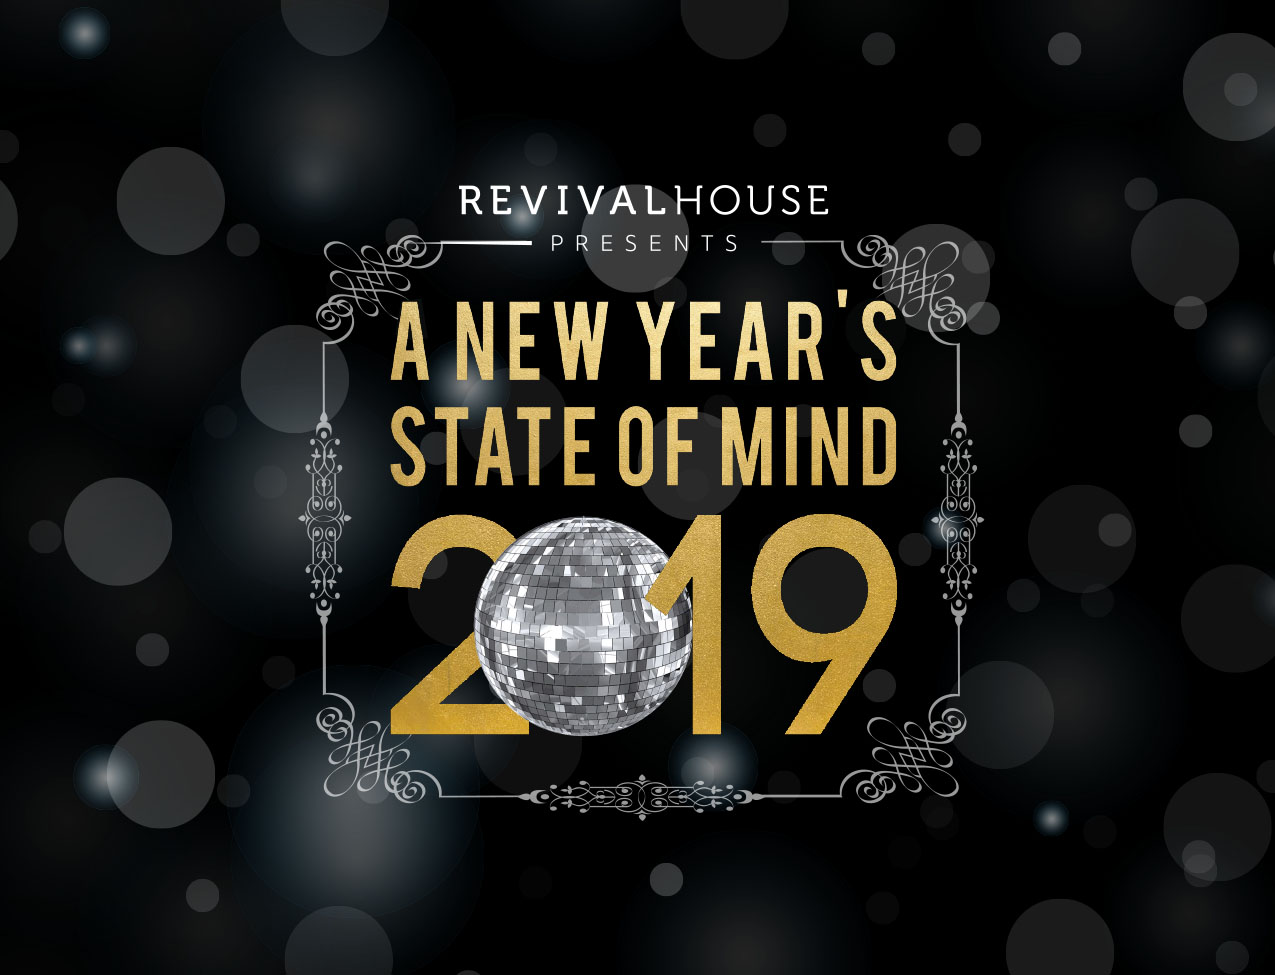 New Year's Eve State of Mind at Revival House